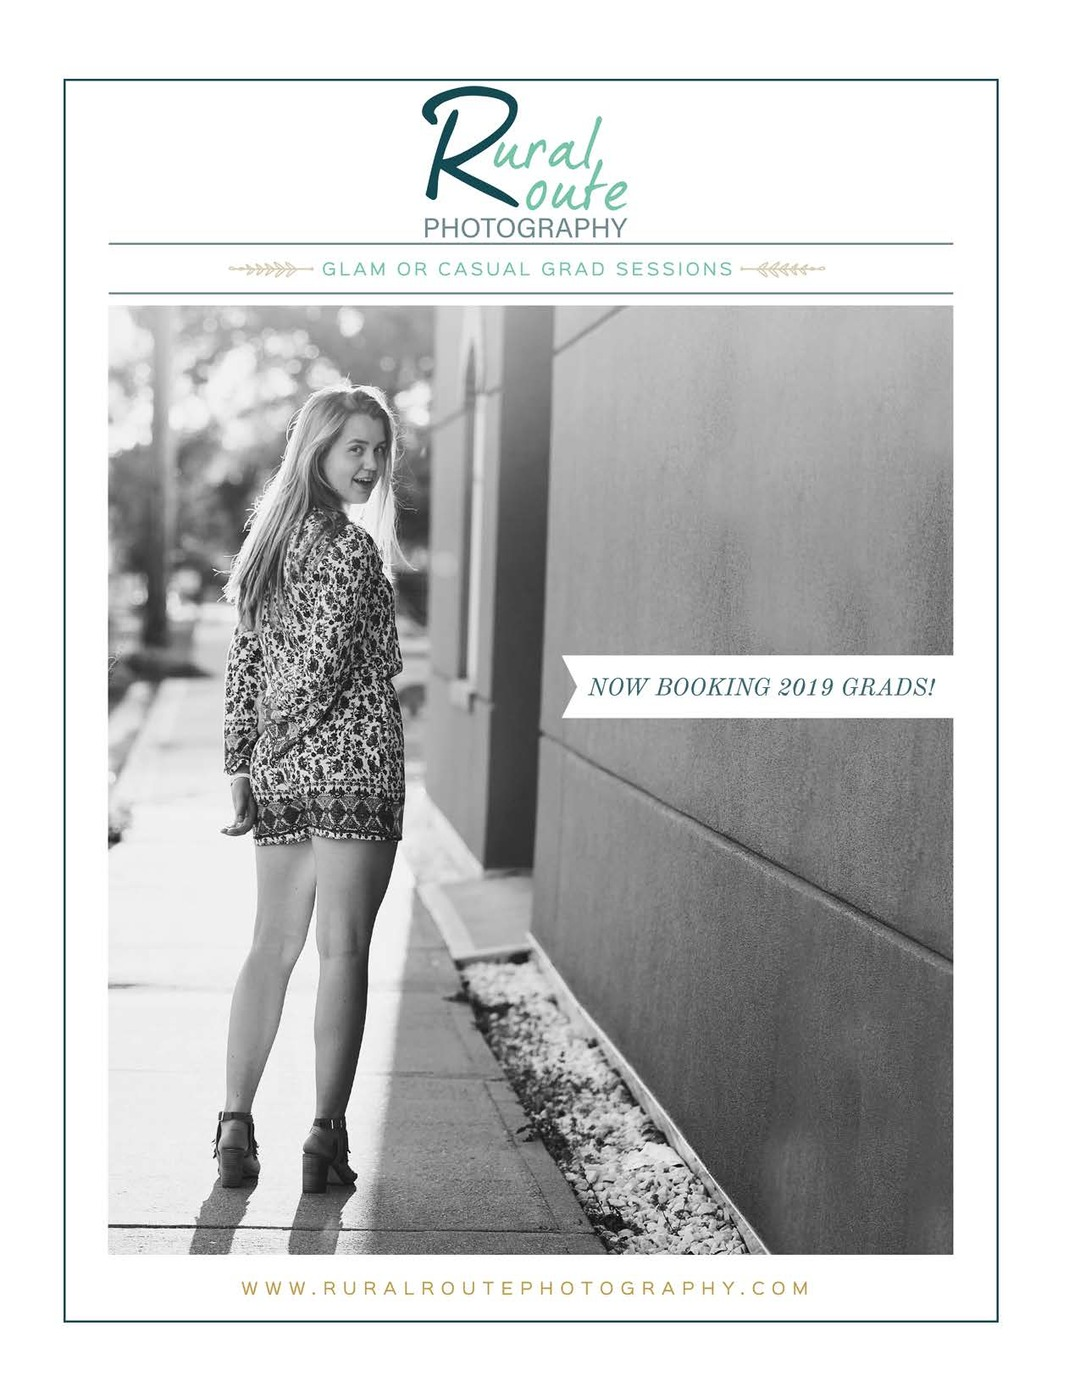 Page 1 of Rural Route Photography Grad Welcome Magazine